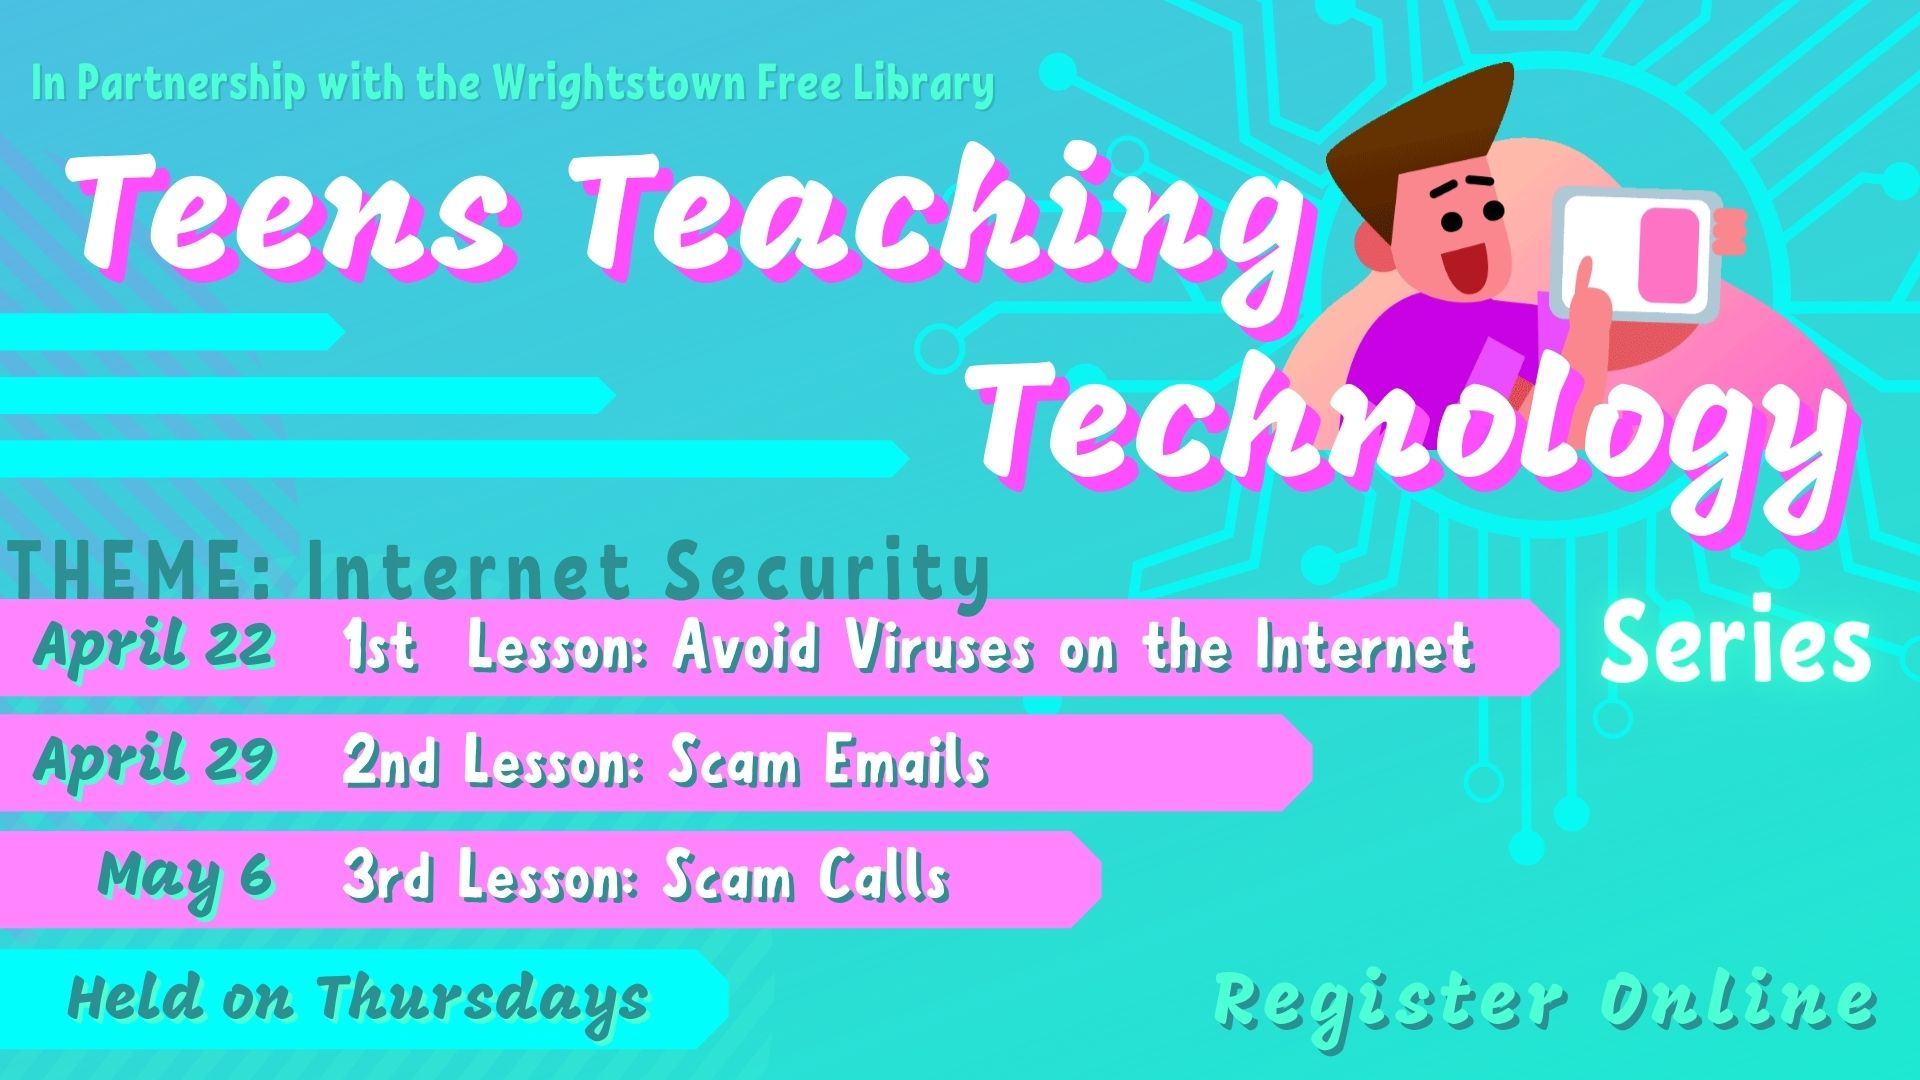 Teens Teaching Technology Series: Internet Security - Scam Emails